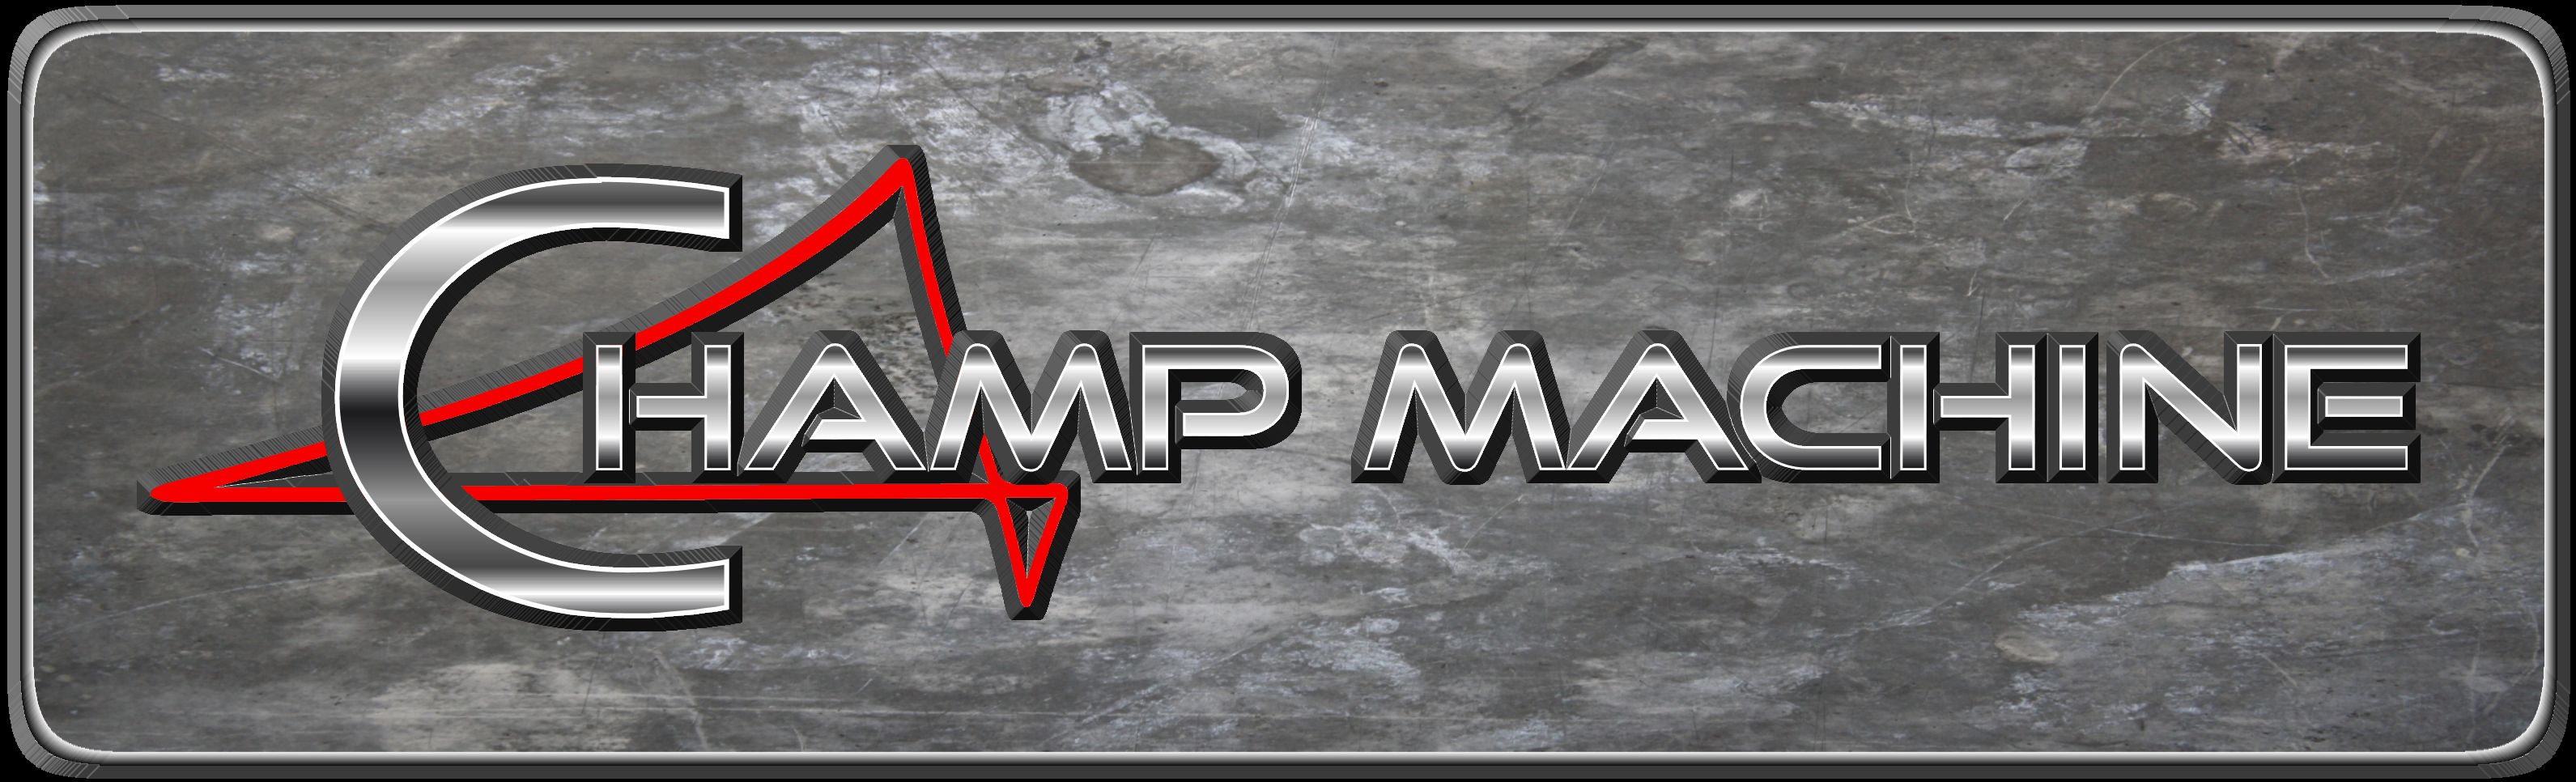 Champ Machine & Welding Ltd